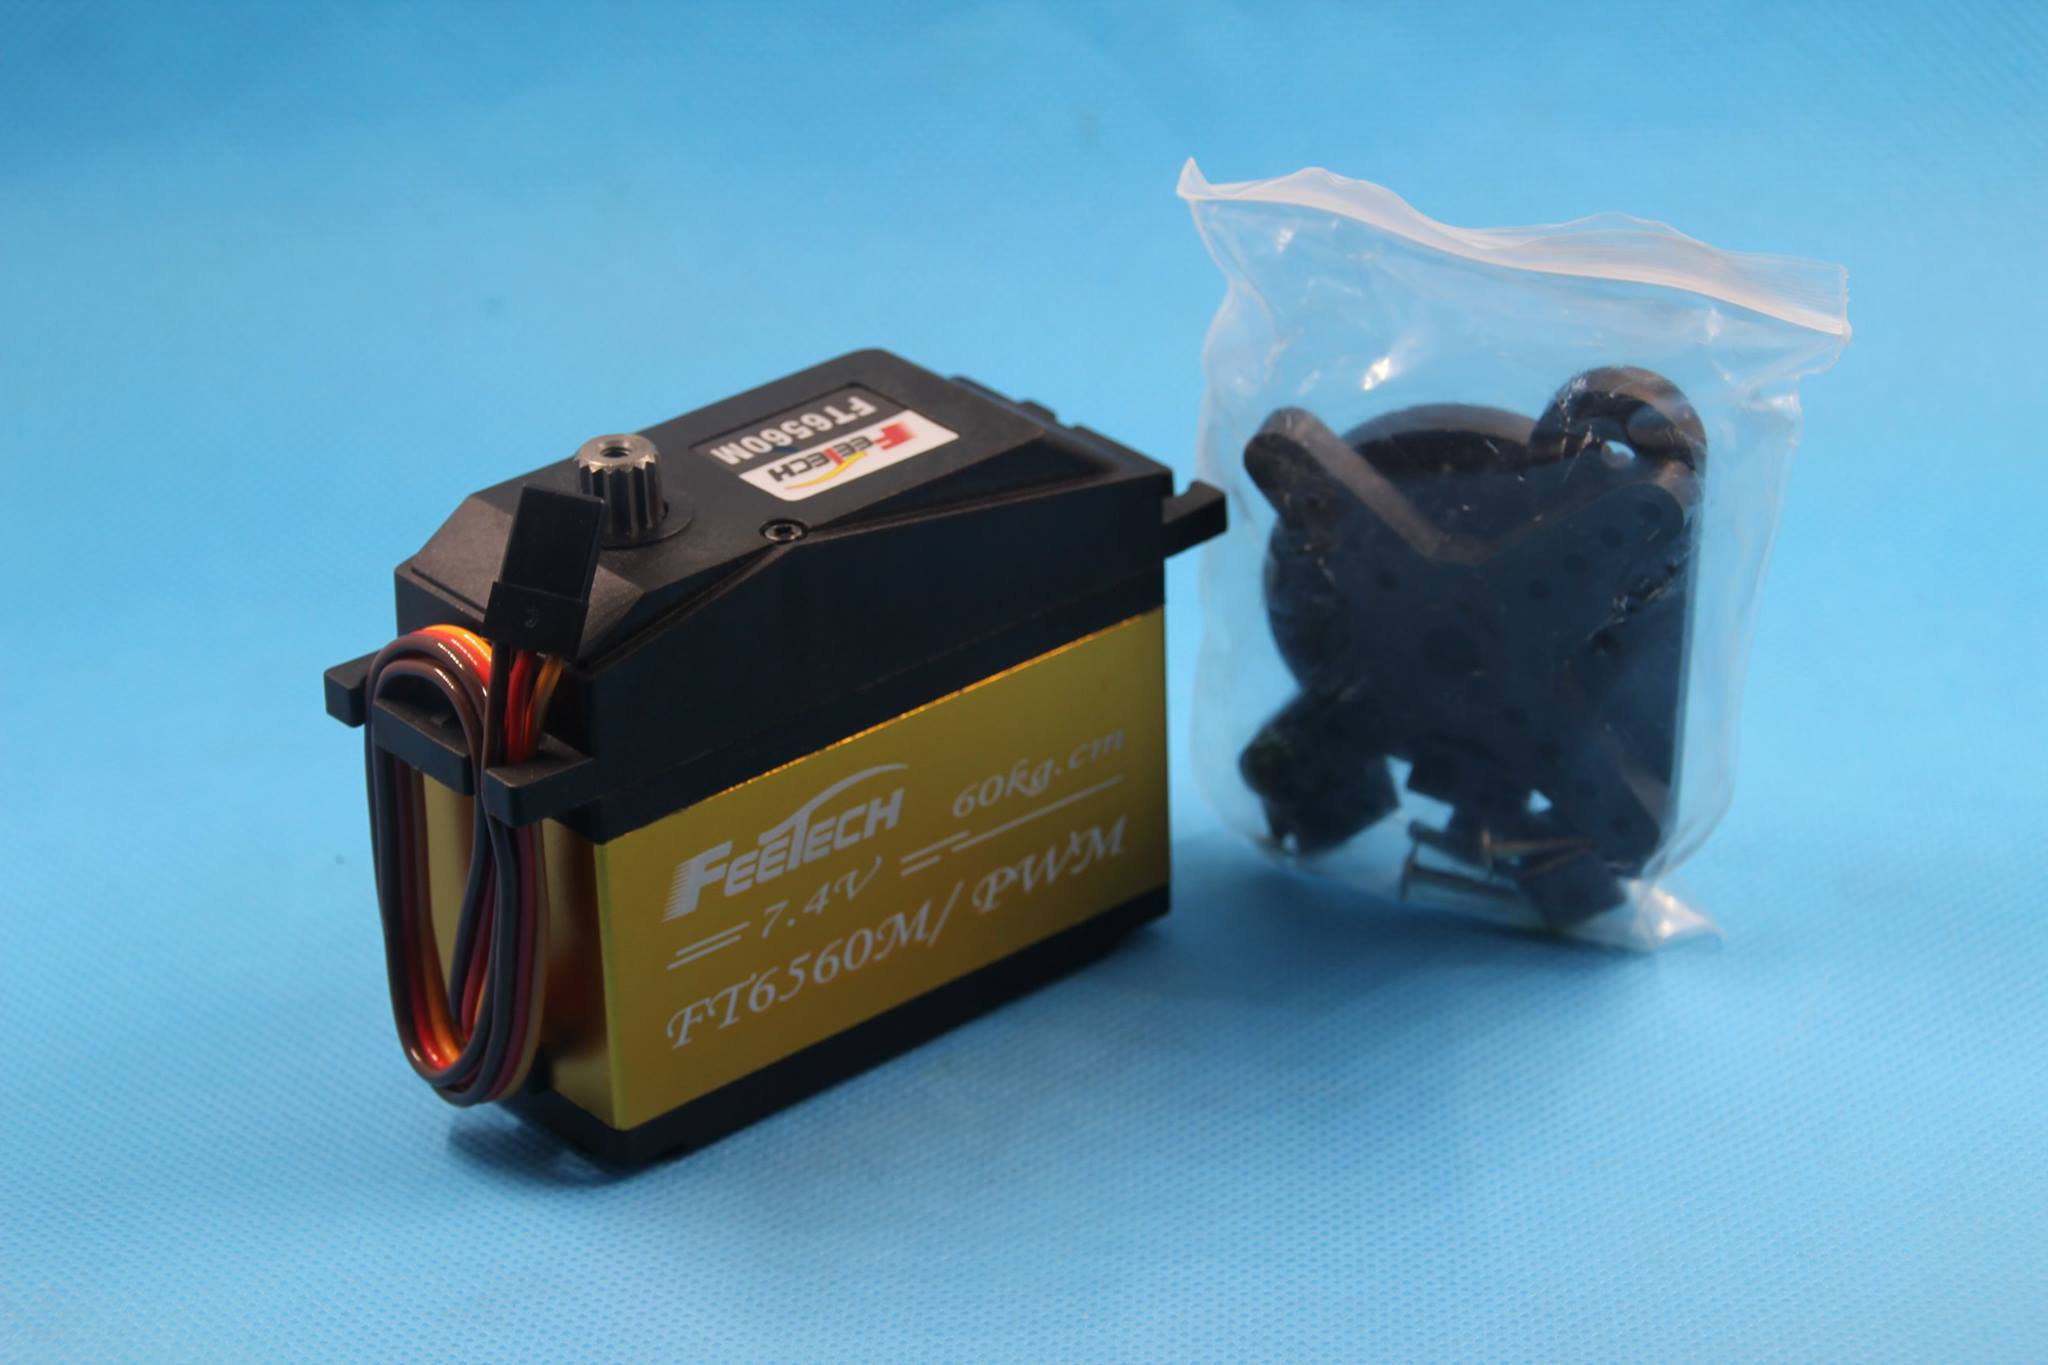 FEETECH FT6560M 60kg RC servo for Emotional escort robot 1:5 RC CAR